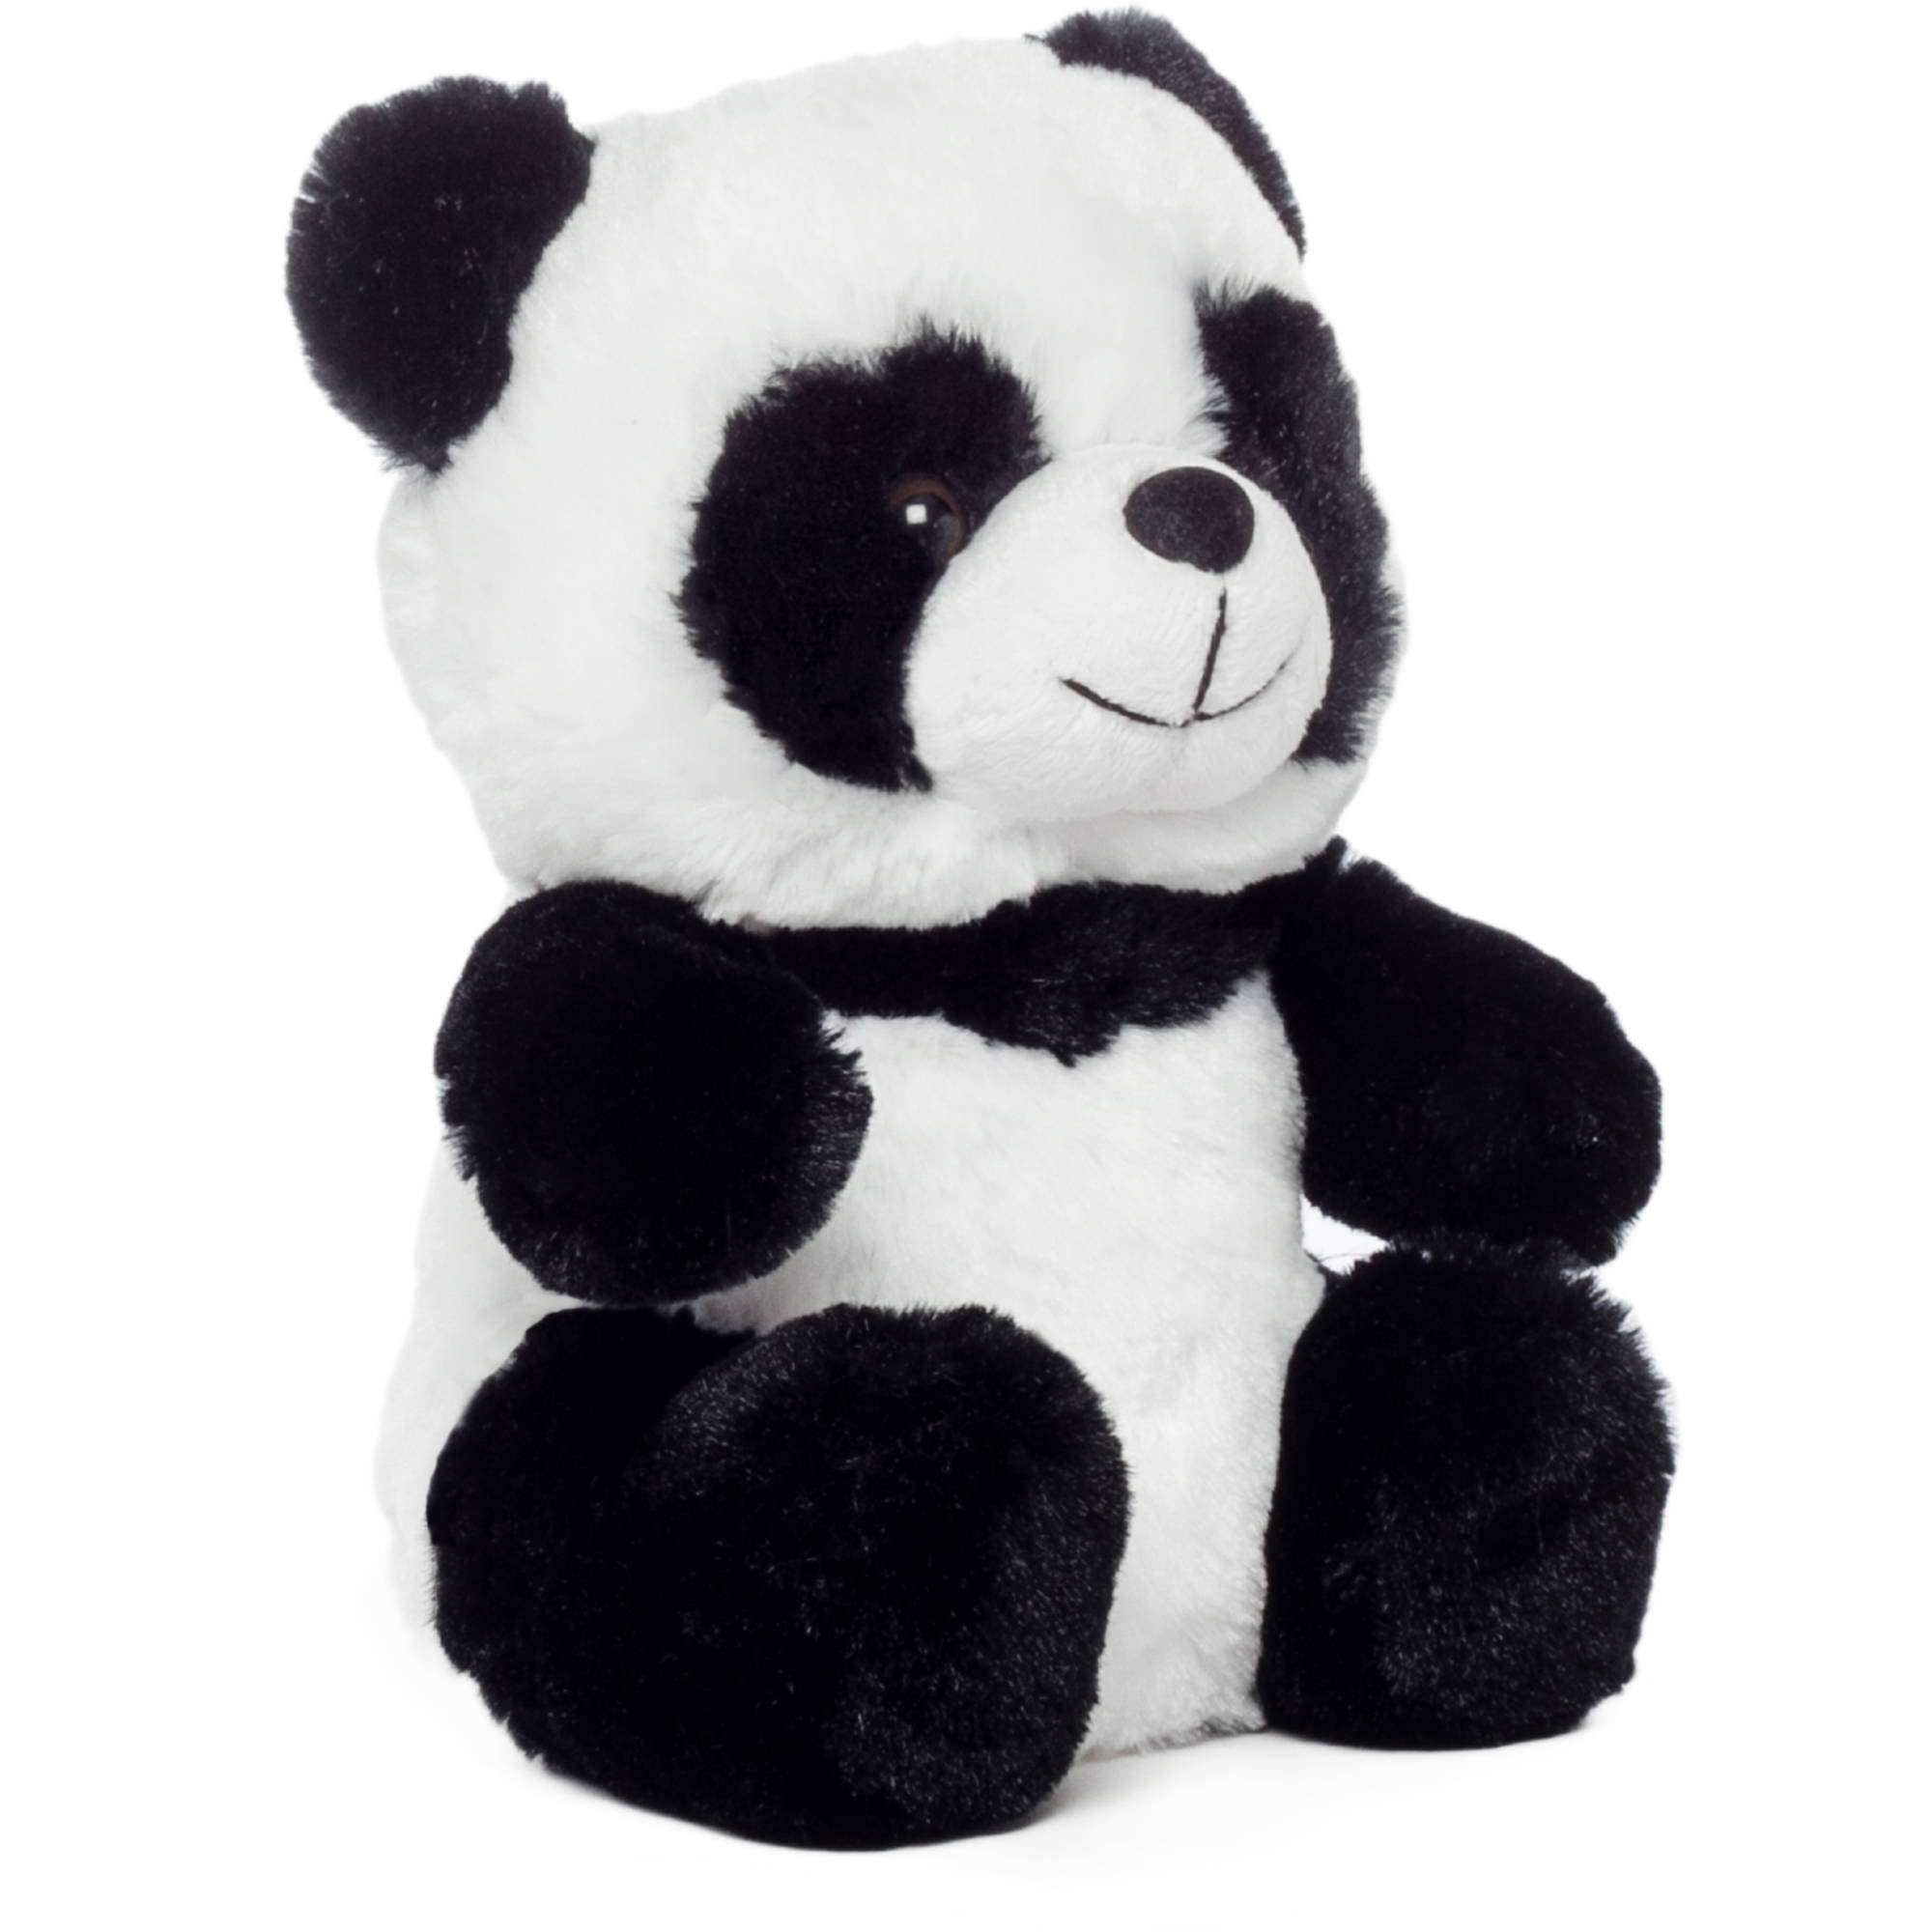 Panda Plush Piggy Bank